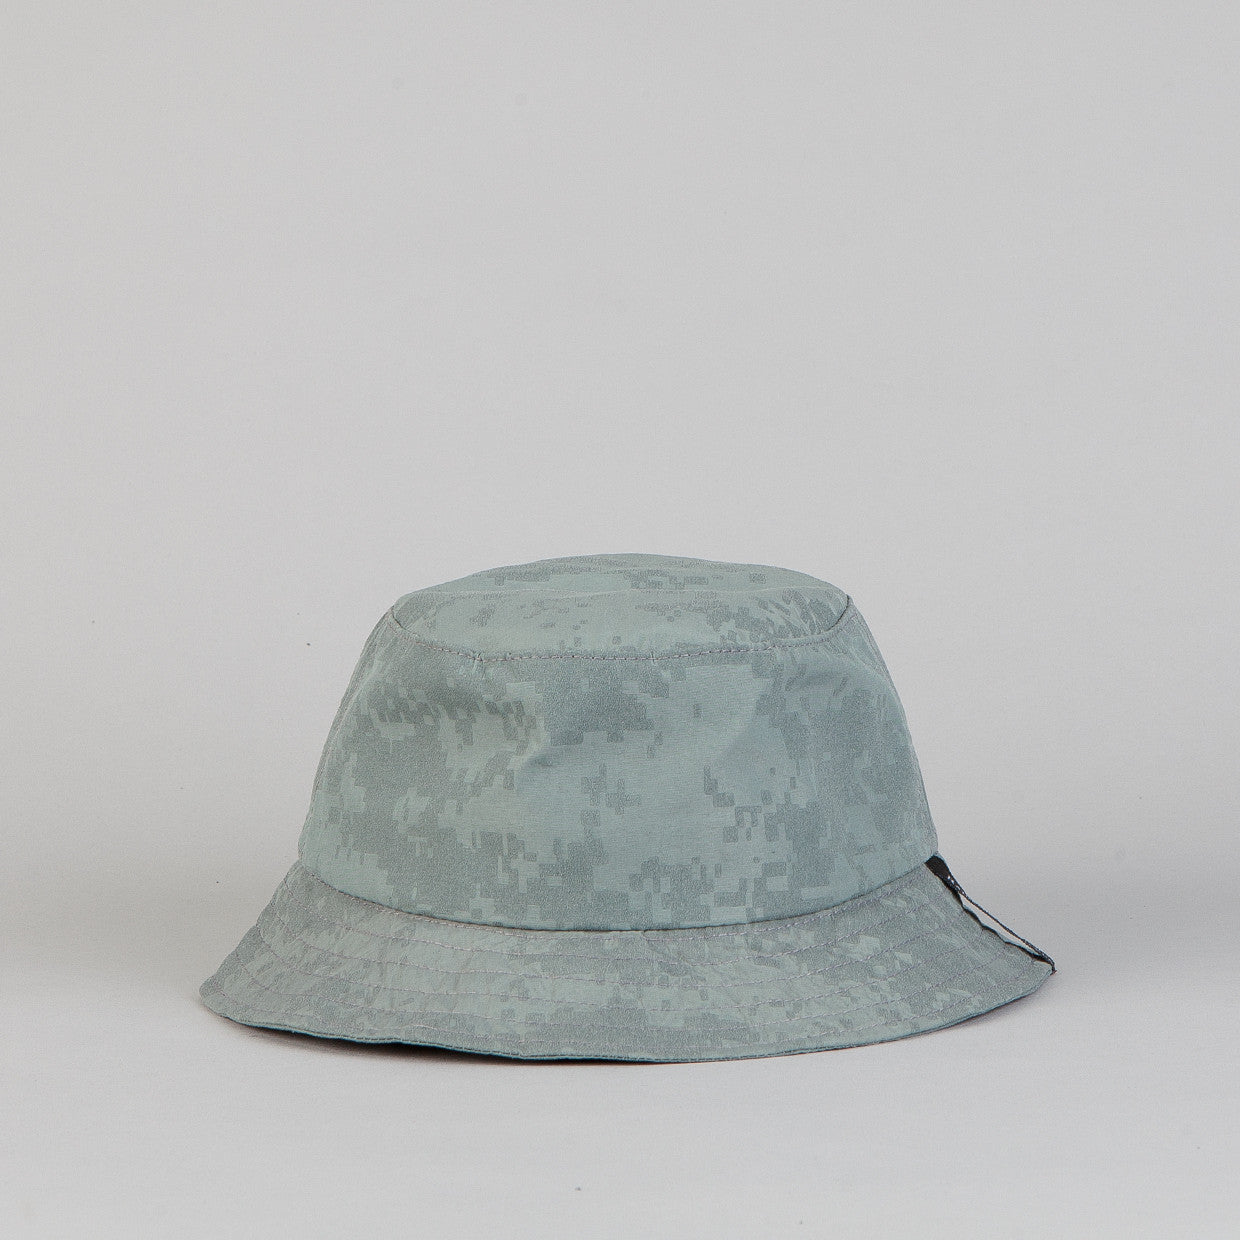 Raised By Wolves Gatineau Bucket Hat Reflective Digi Camo